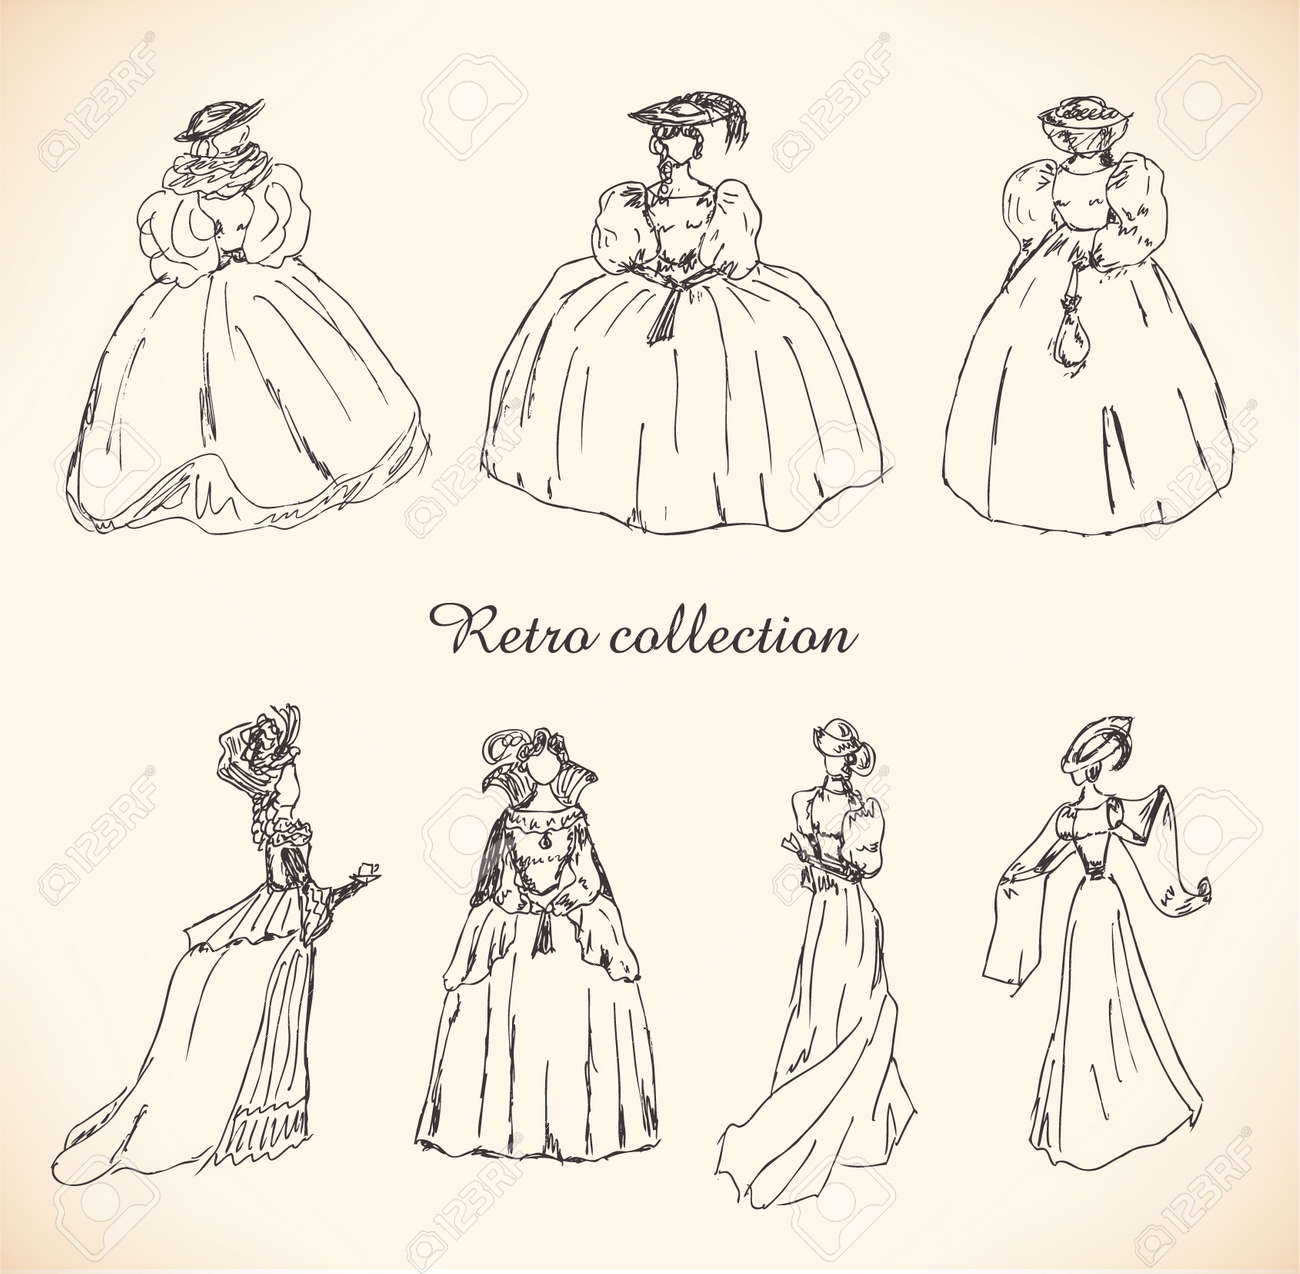 Set With Sketches Of Women In Retro Clothes. Ladies In Historical ...